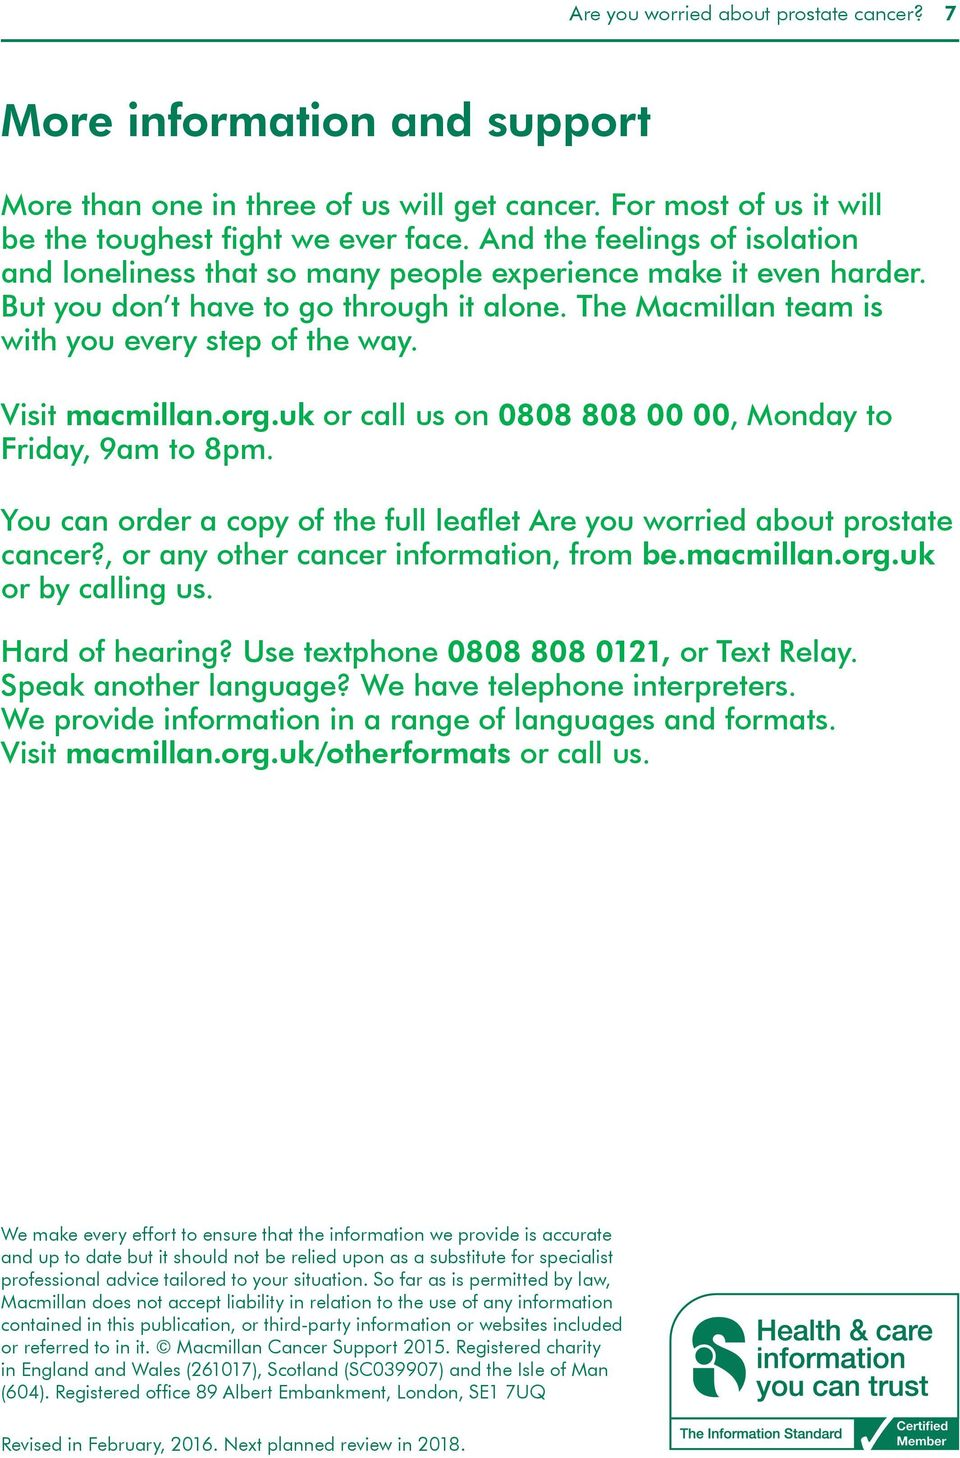 Visit macmillan.org.uk or call us on 0808 808 00 00, Monday to Friday, 9am to 8pm. You can order a copy of the full leaflet Are you worried about prostate cancer?